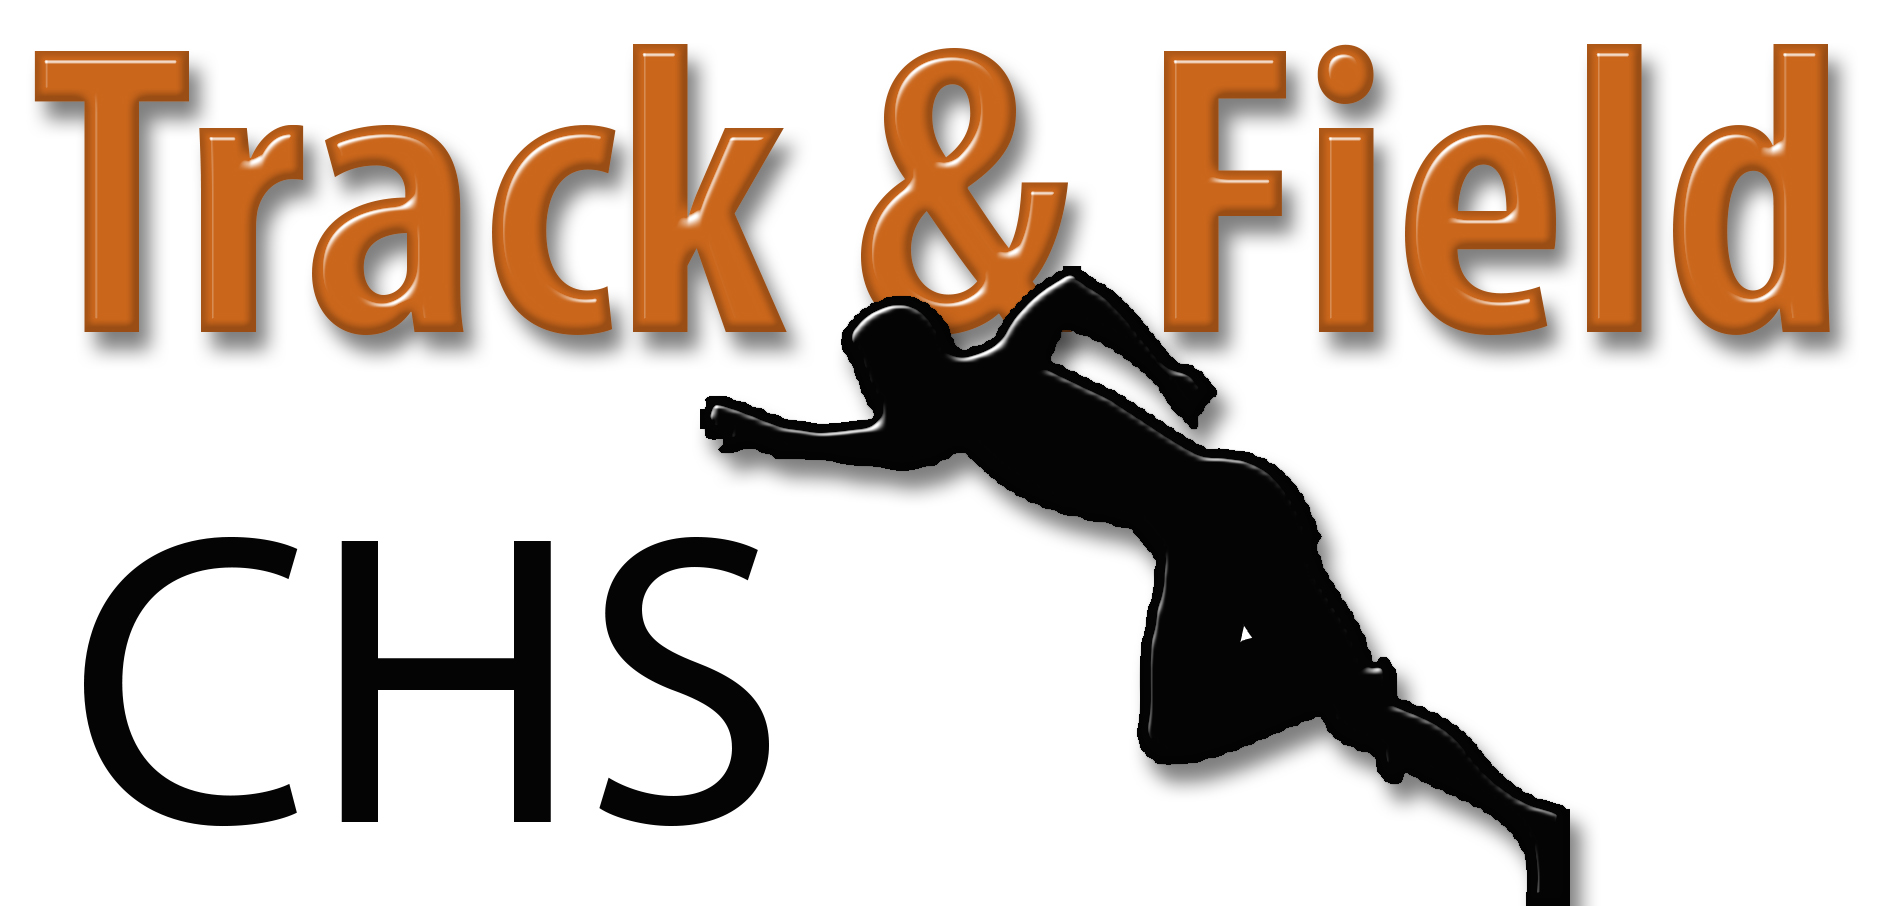 2016 Track and Field             results